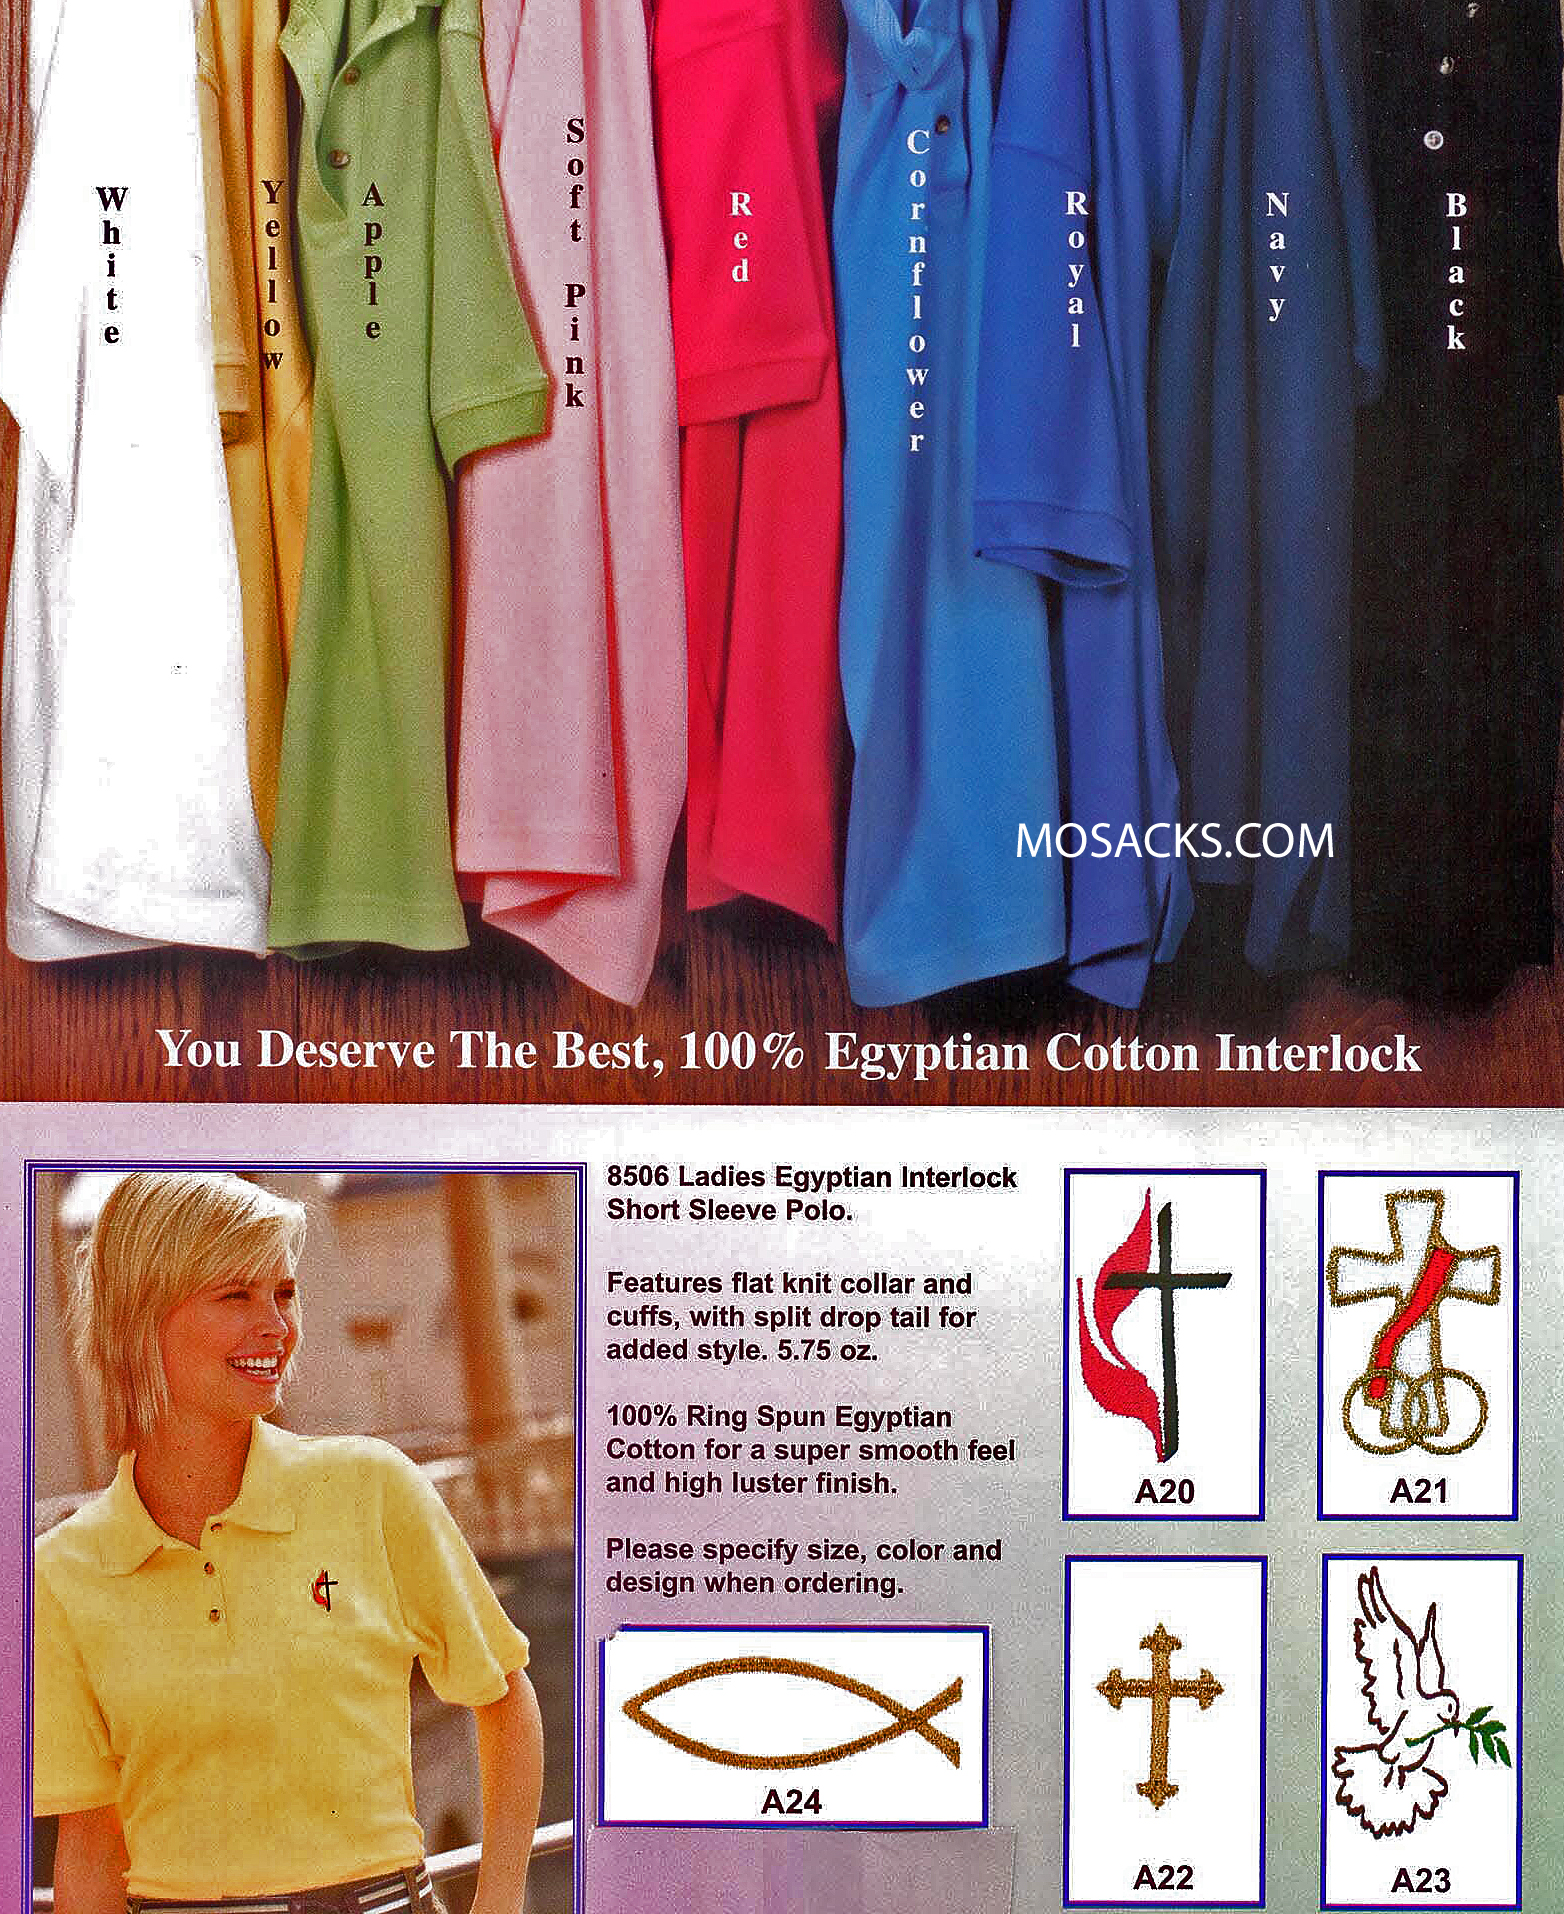 Women's Christian Apparel